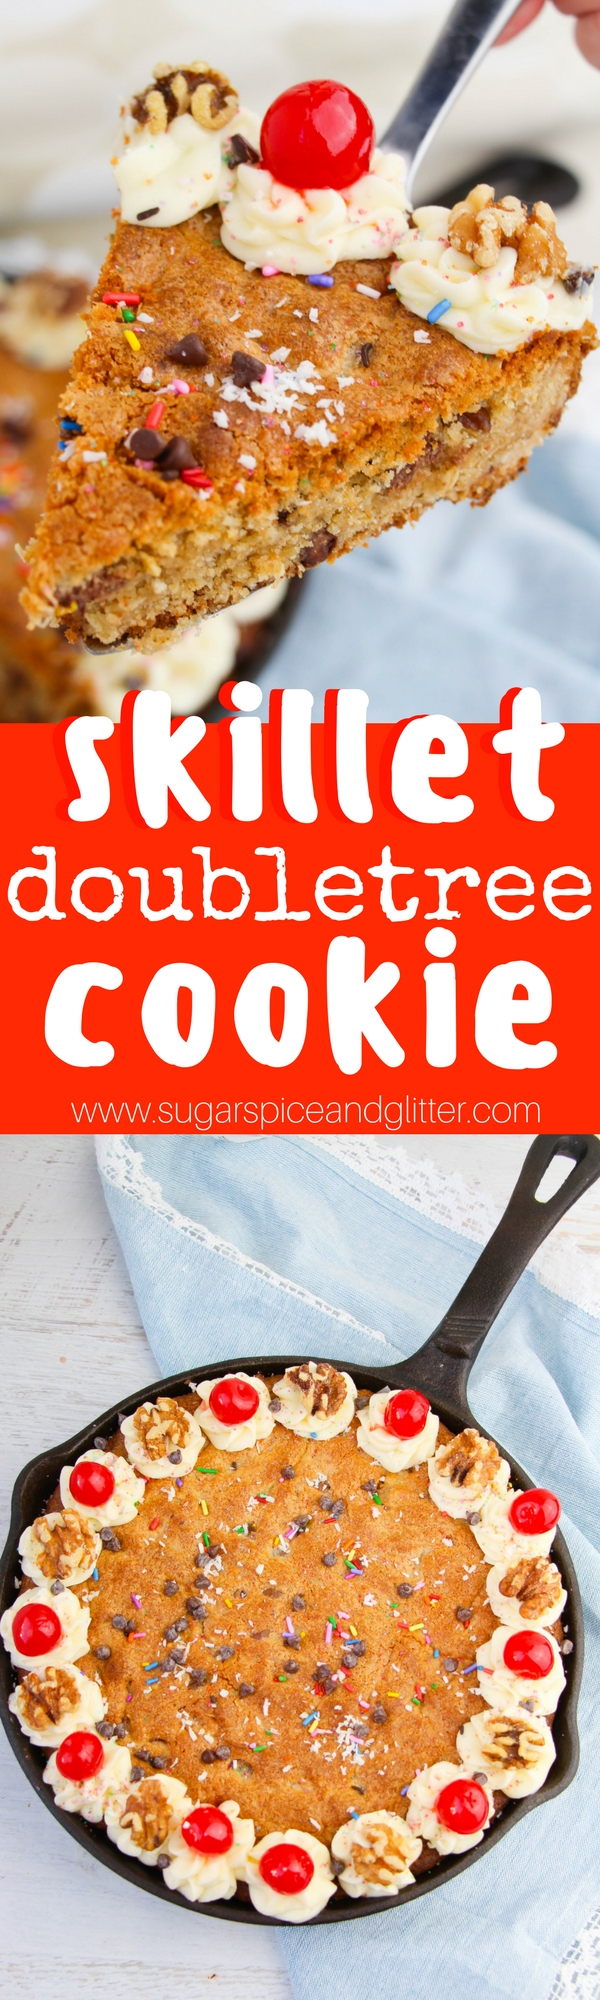 The BEST ever GIANT chocolate chip cookie recipe. A skillet dessert that is super simple to whip up and makes a big impression. Top with sundae-style toppings for the ultimate birthday cookie, perhaps for someone who doesn't like cake!